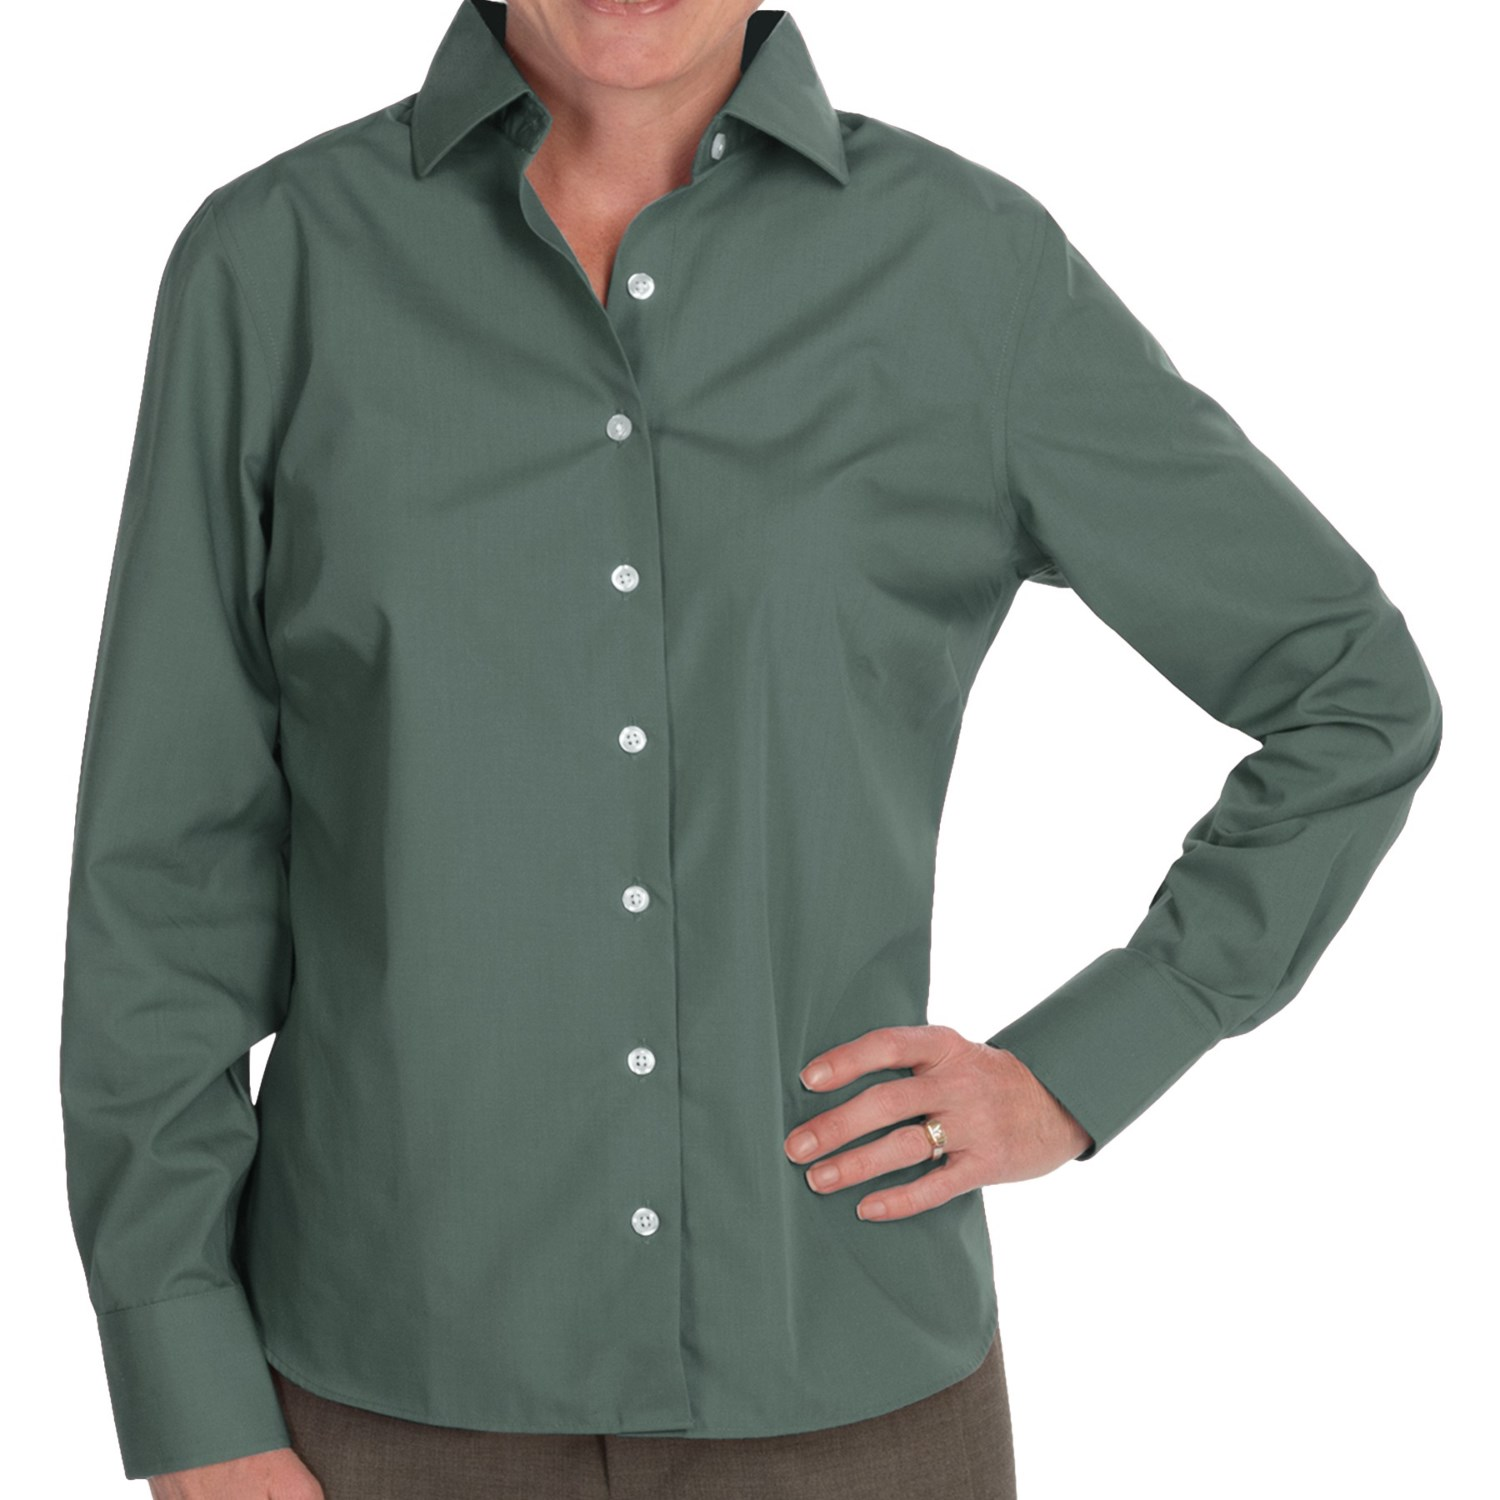 Lands end wrinkle free broadcloth shirt for petite women Wrinkle free shirts for women